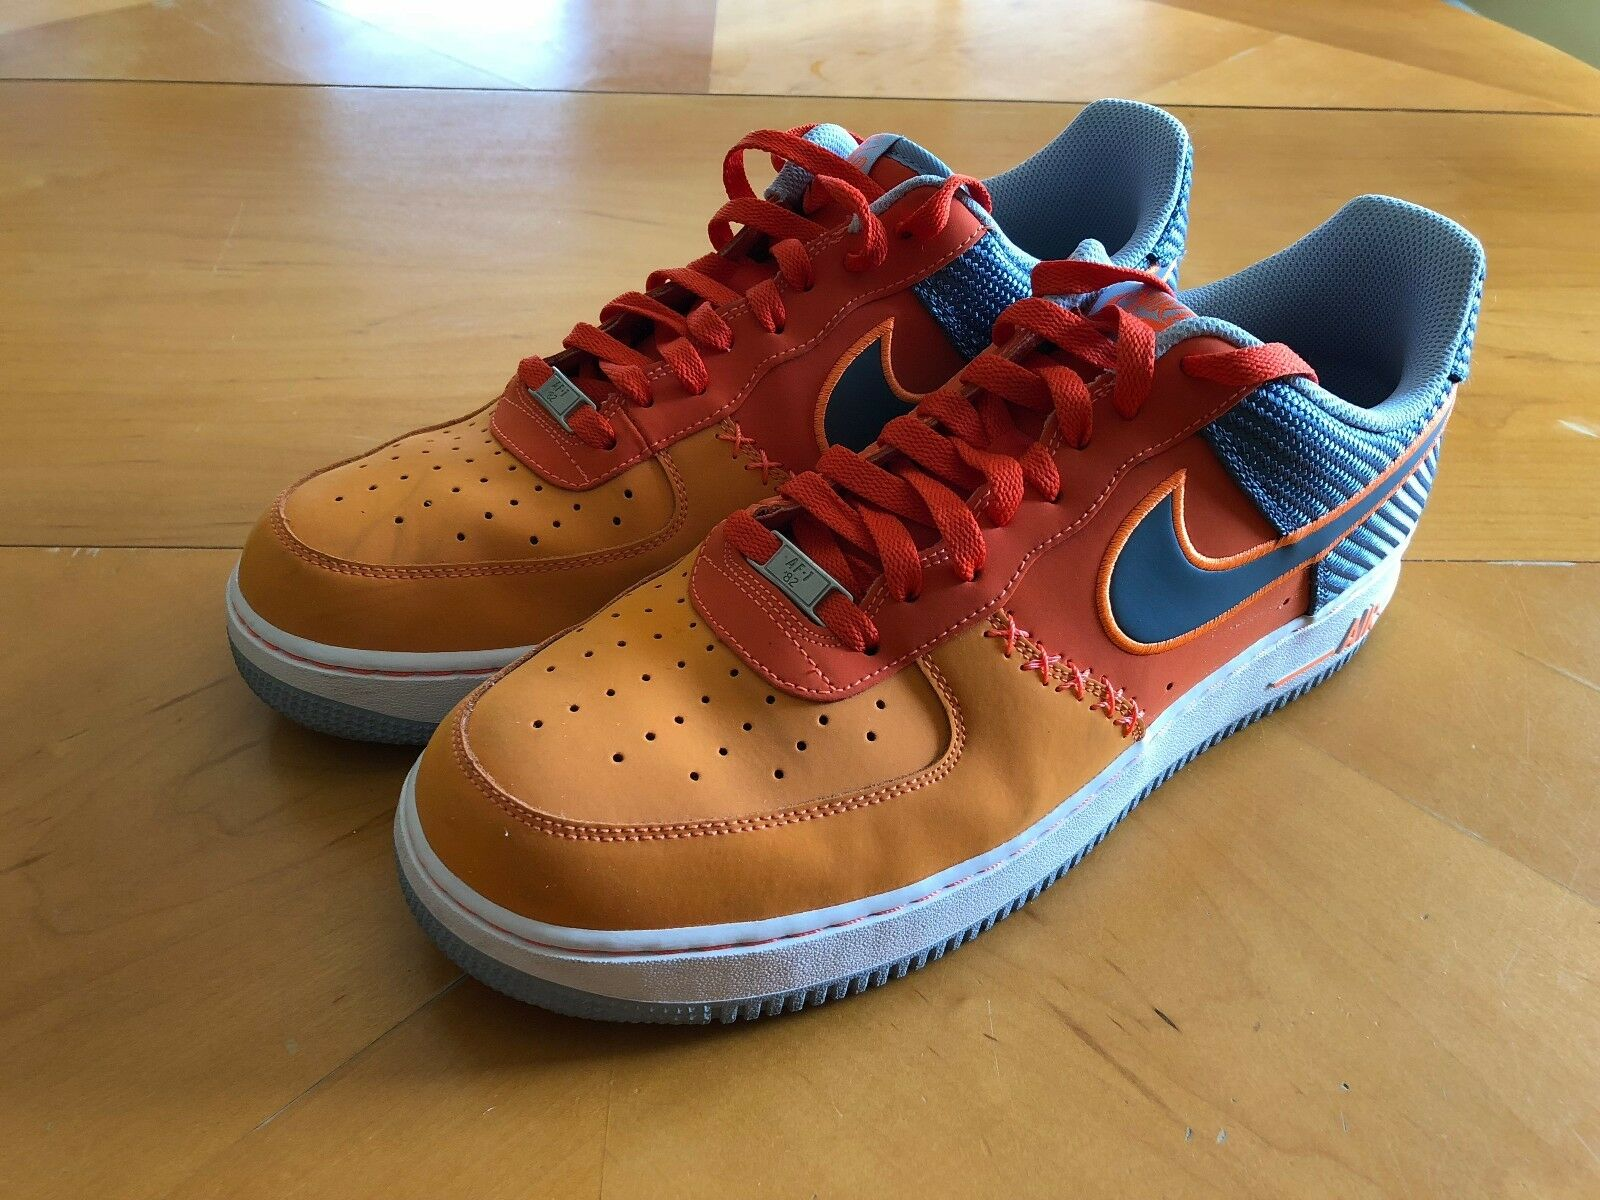 Nike Air Force 1 Low 488298 800 Orange Gary Mens Basketball Shoes US 13 New shoes for men and women, limited time discount